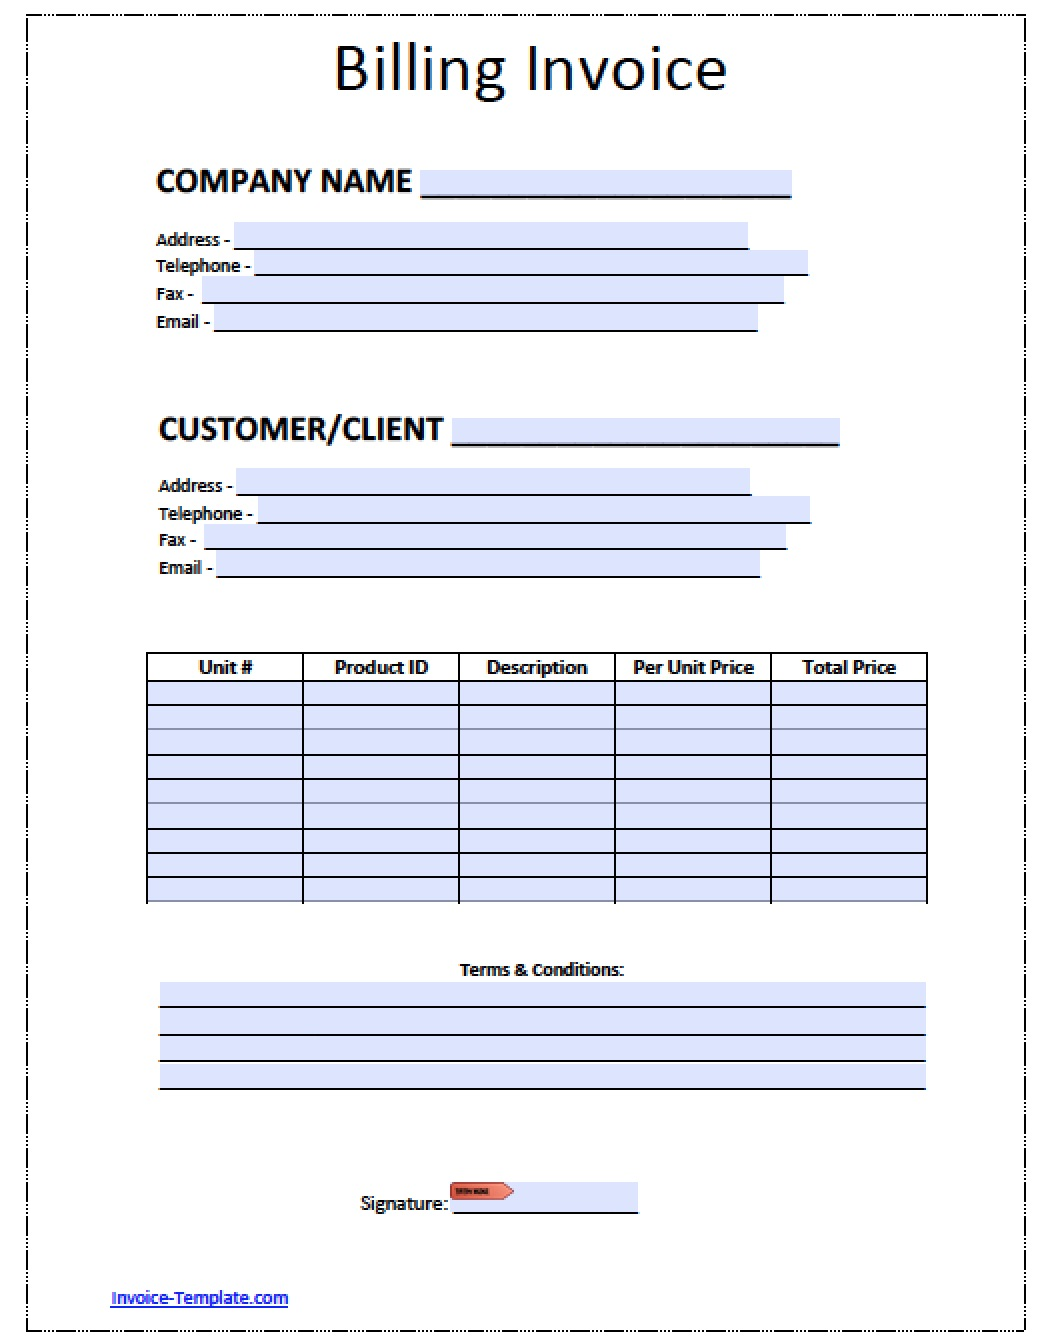 Free Billing Invoice Template Excel PDF Word Doc - Invoice template download excel